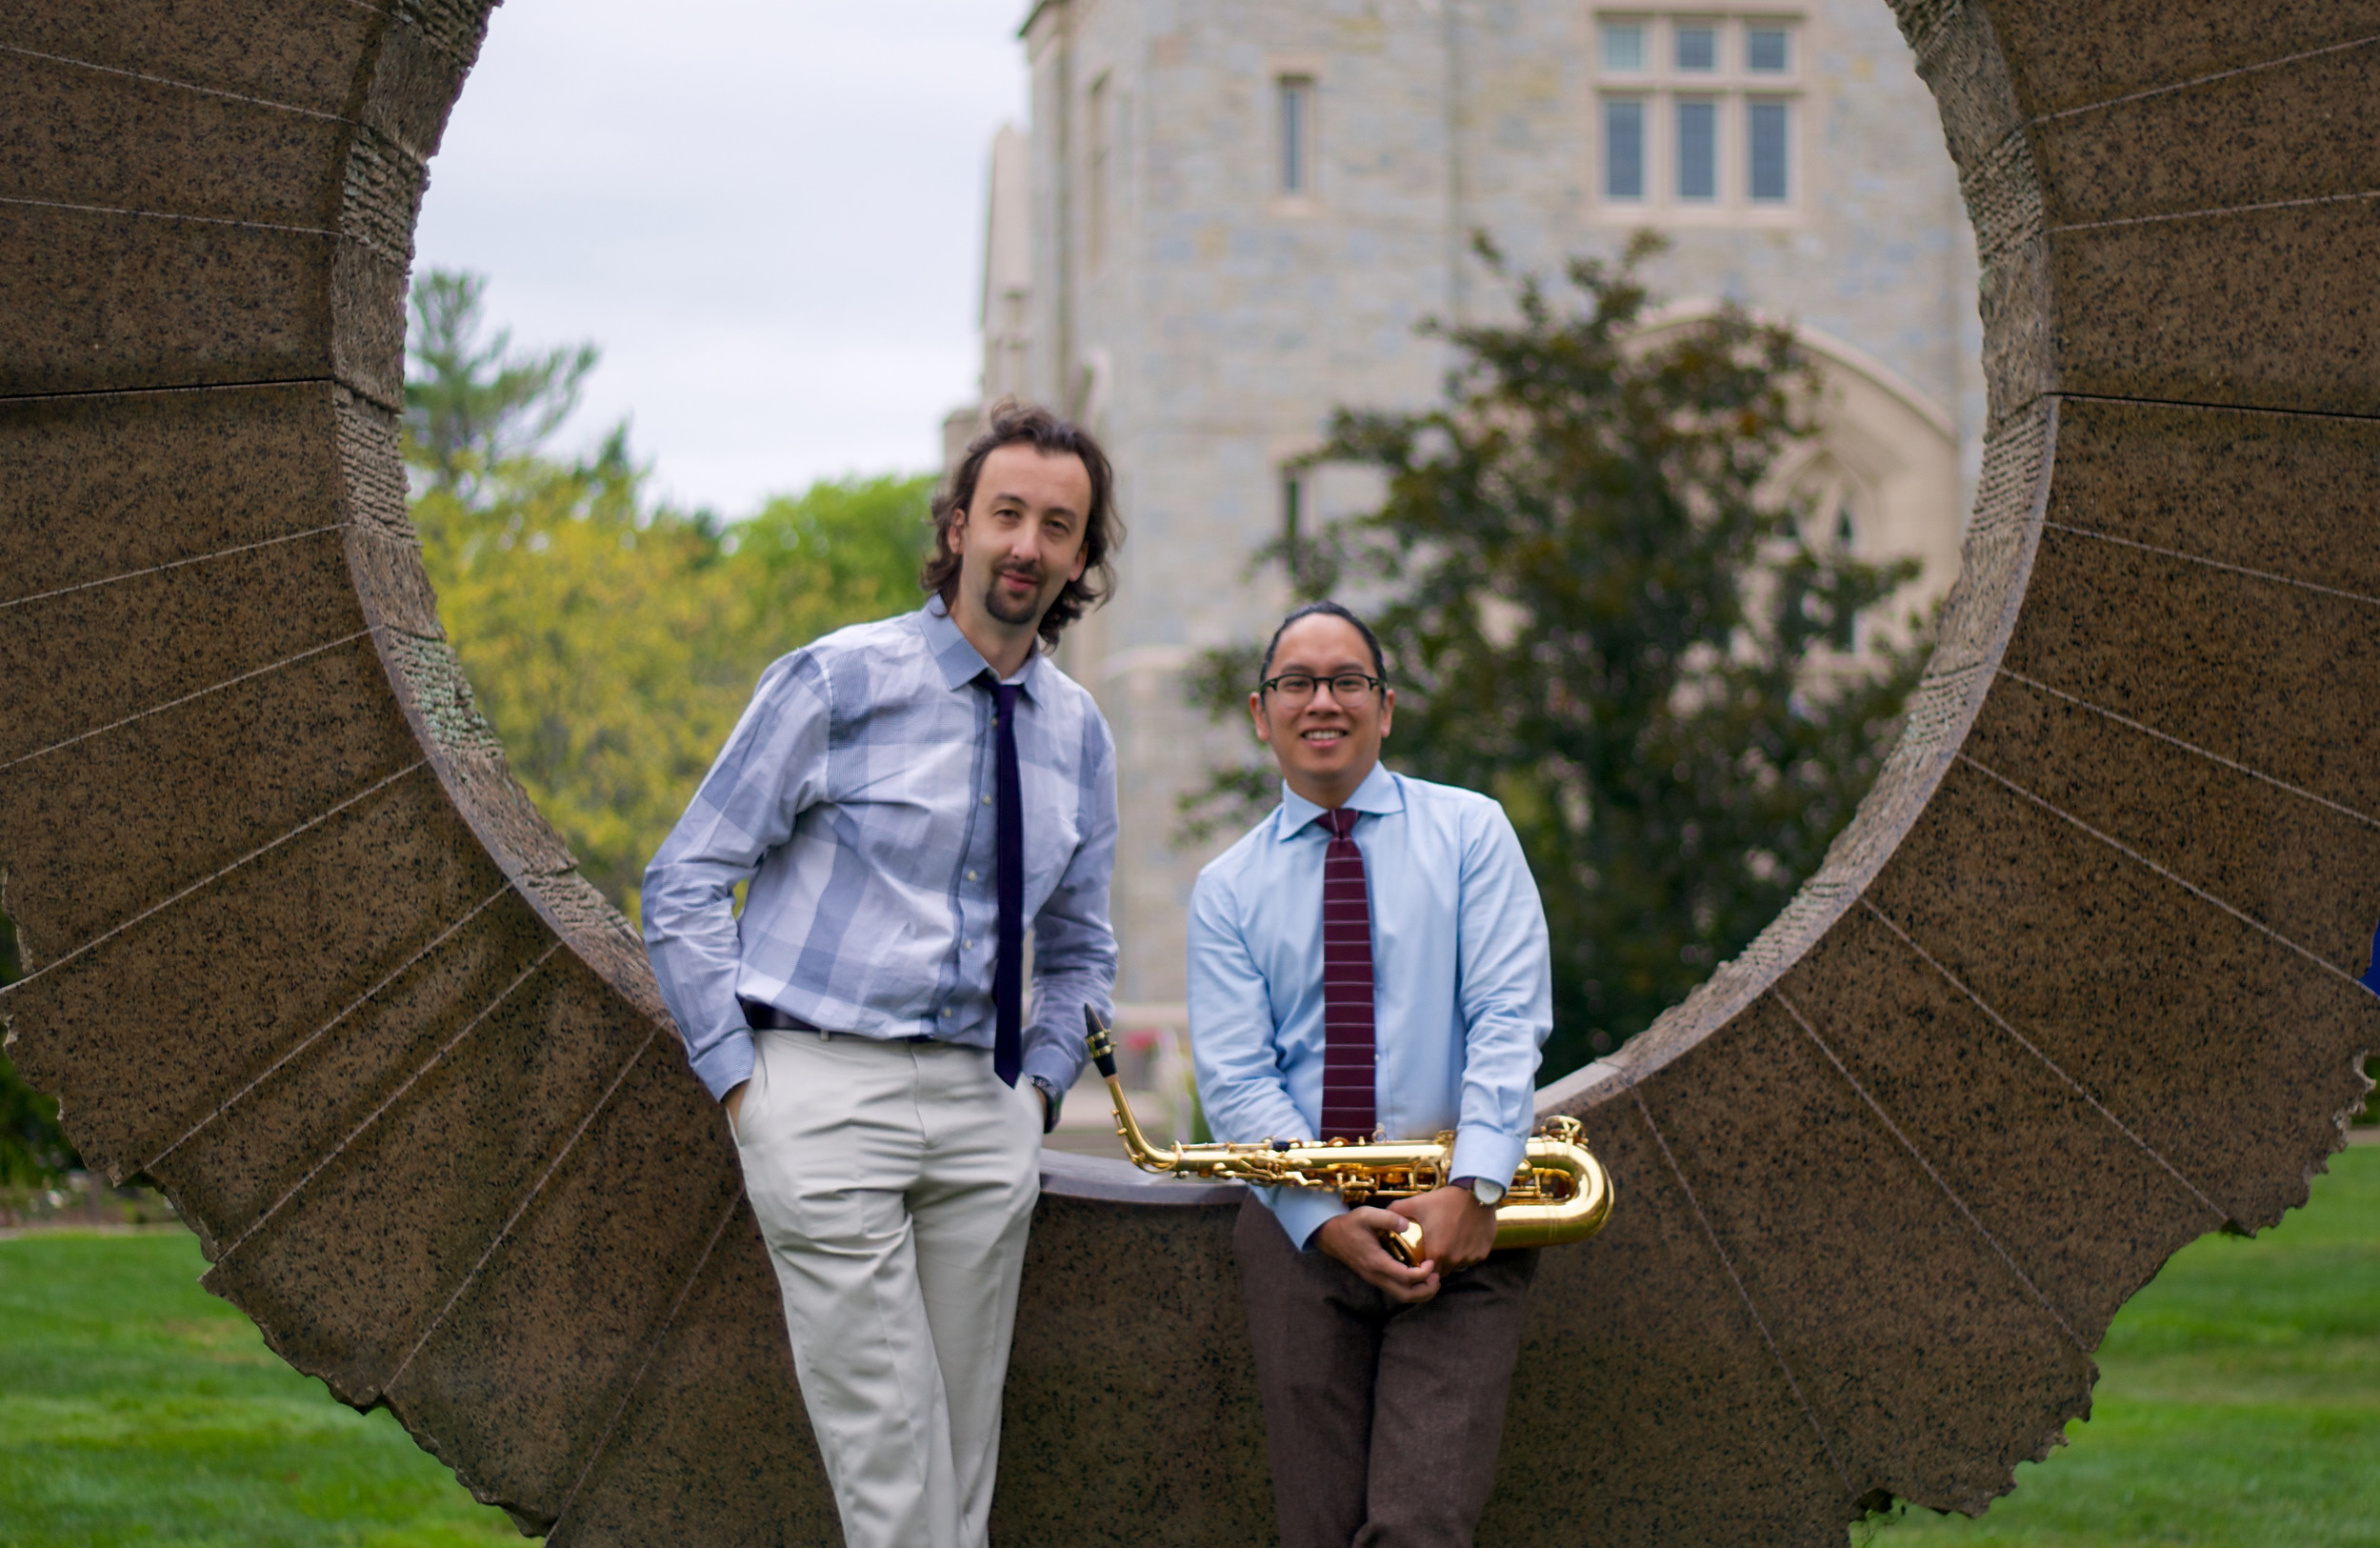 The Prometheus Duo performs in the Arts in the Village Concert Series on October 7